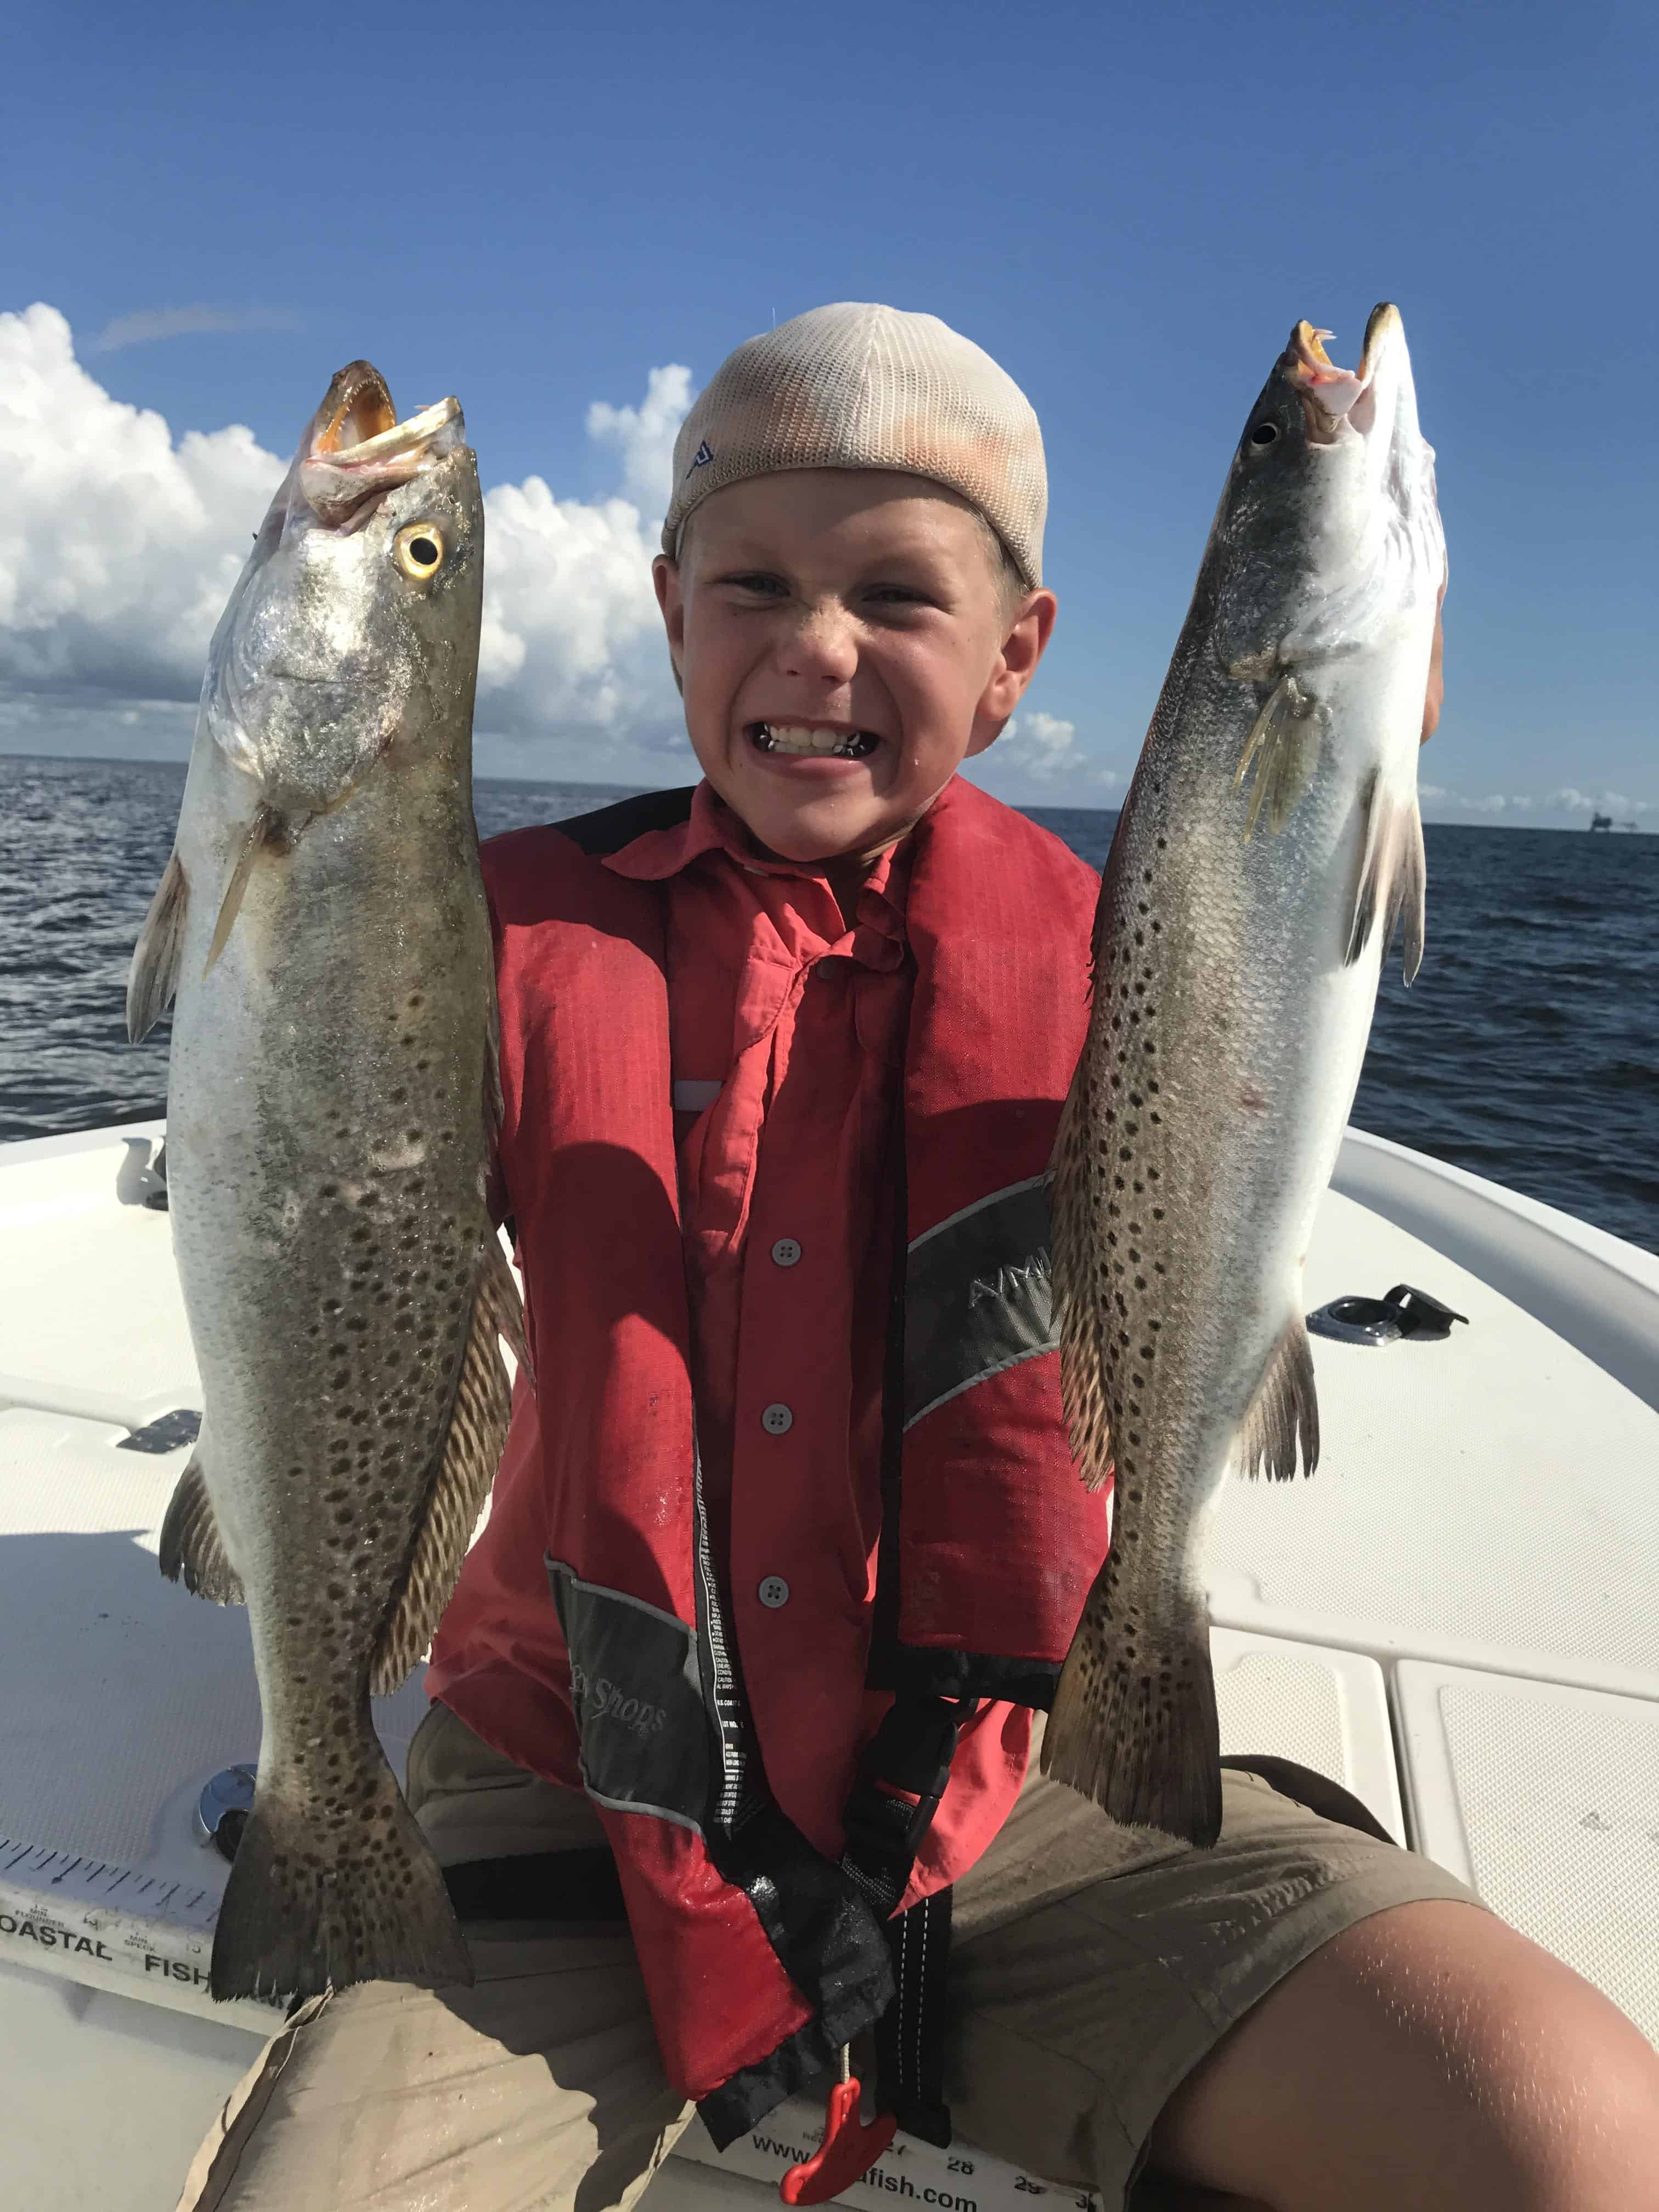 Gulf shores fort morgan mobile bay and dauphin island for Charter fishing gulf shores